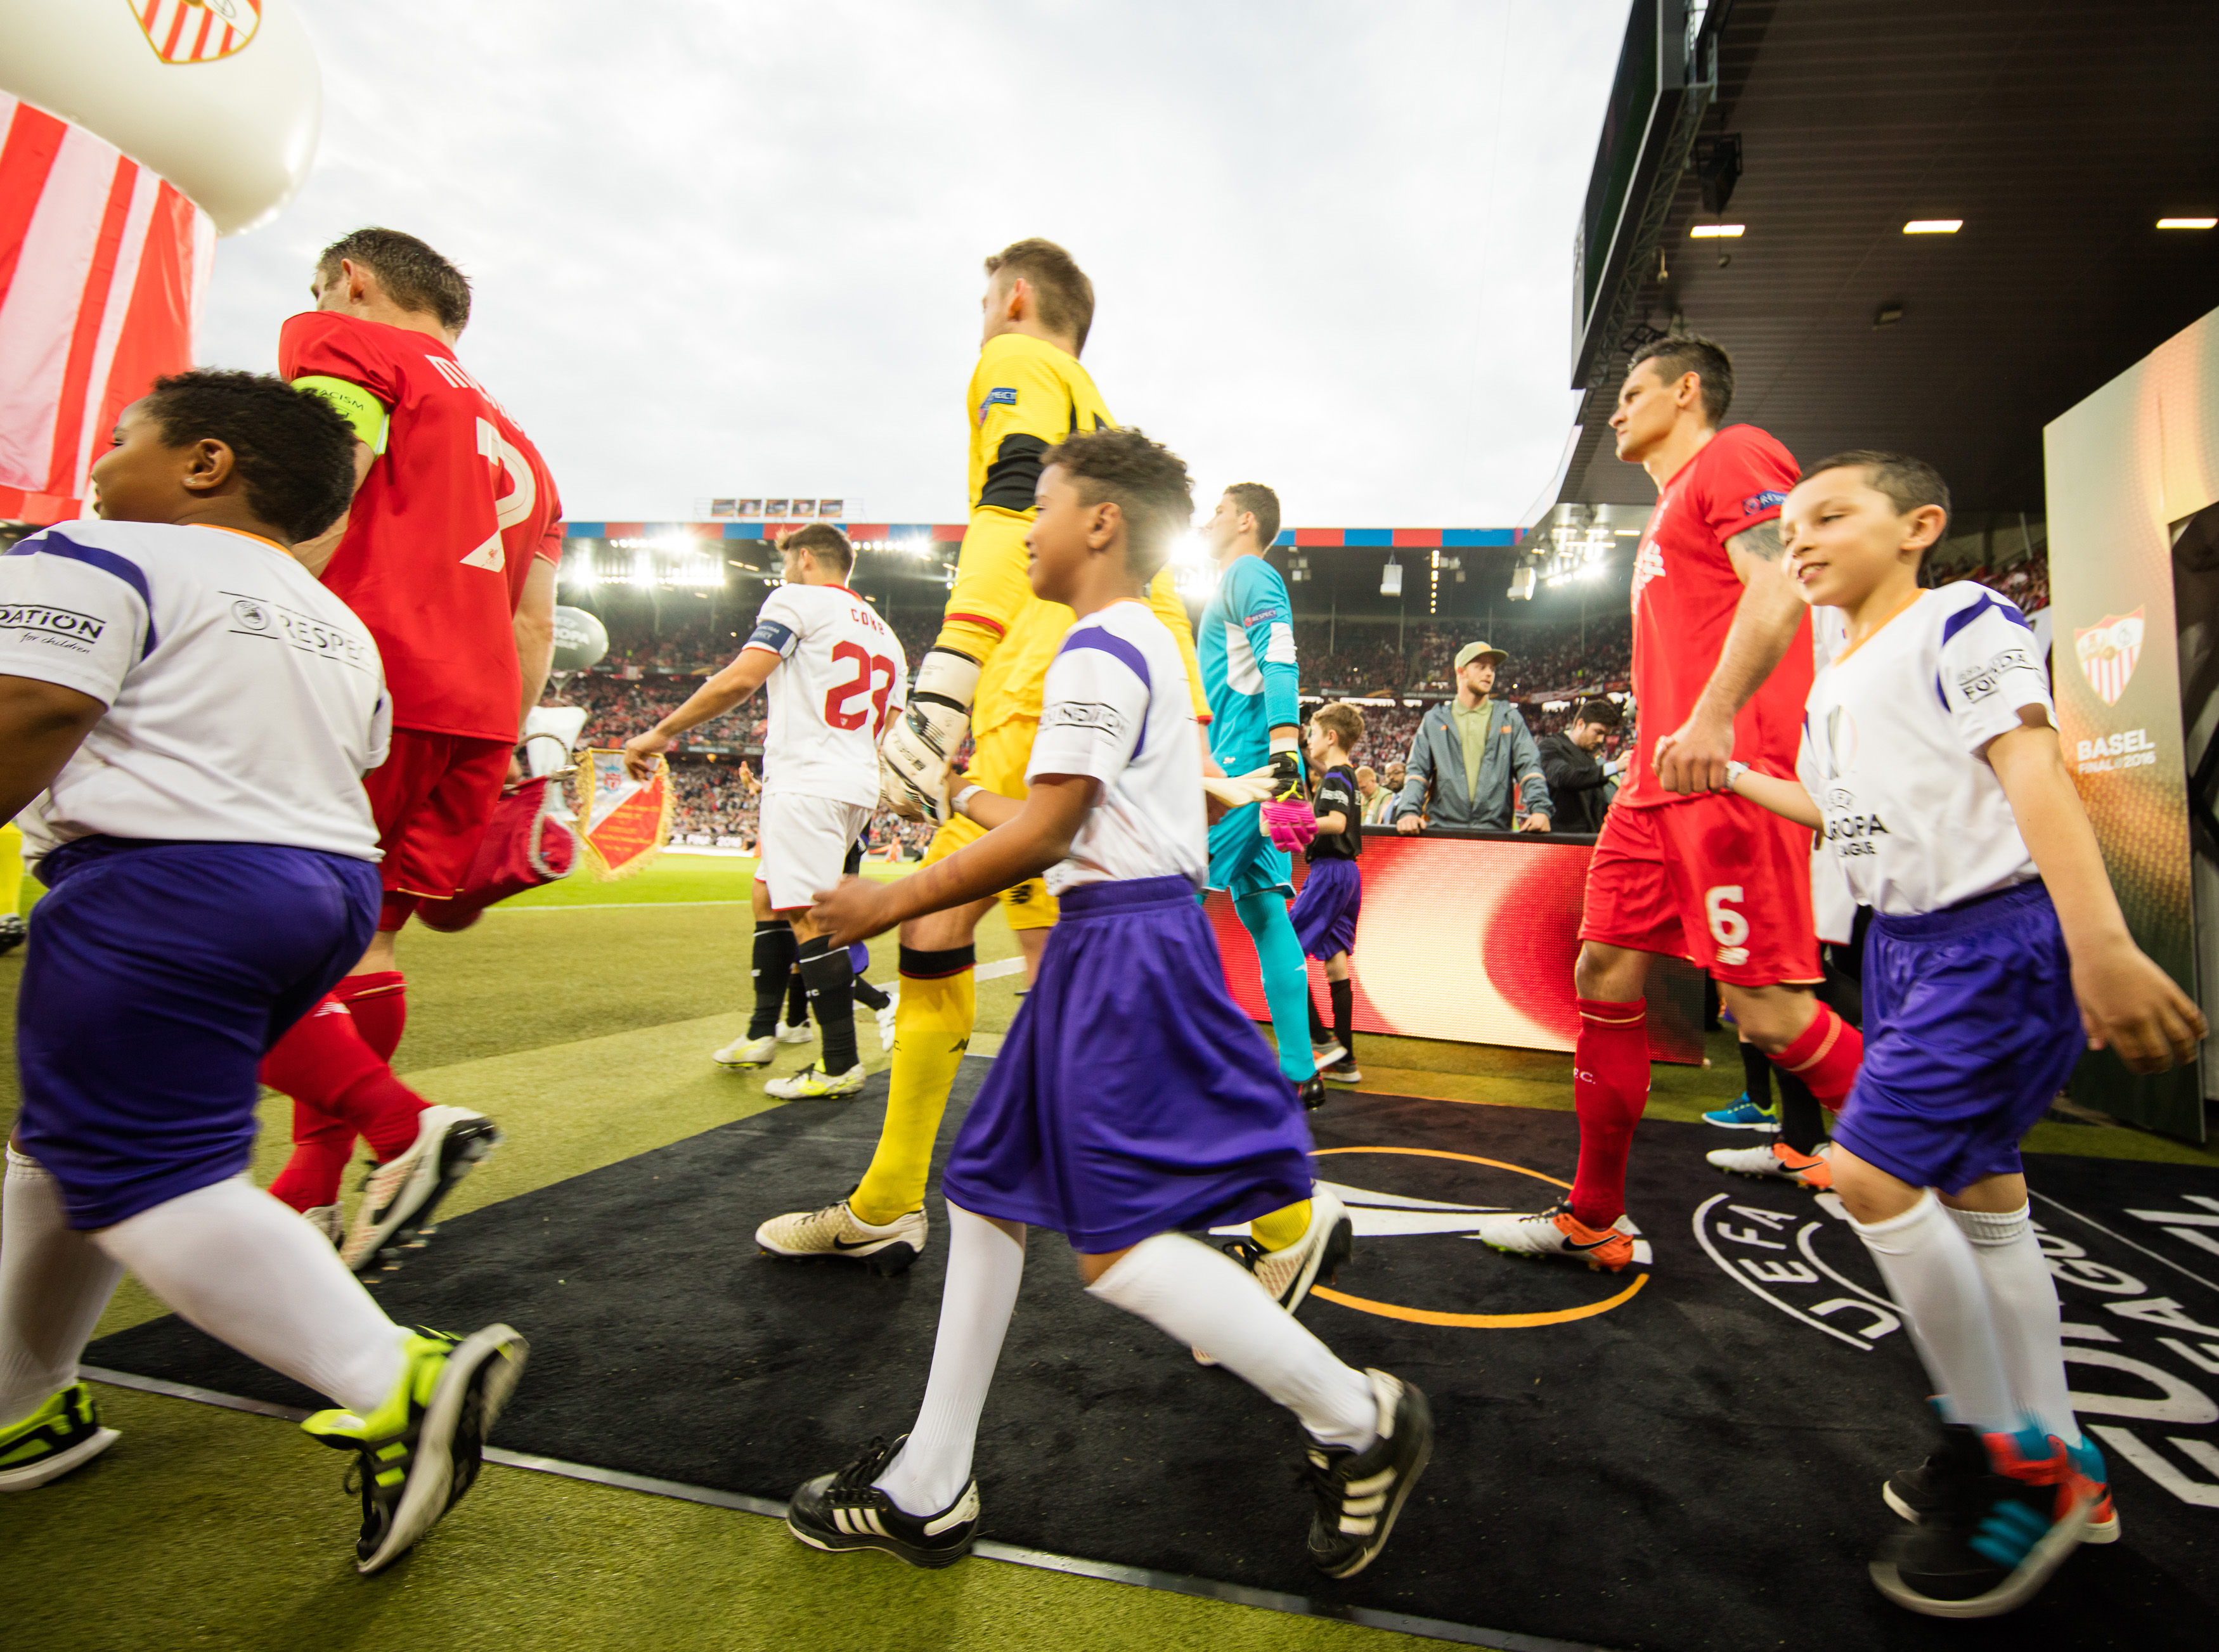 BASEL, SWITZERLAND - MAY 18:  Fedex player escort kids are seen prior to the UEFA Europa League Final between Liverpool and Sevilla at St. Jakob-Park on May 18, 2016 in Basel, Switzerland.  (Photo by Simon Hofmann - UEFA/UEFA via Getty Images)